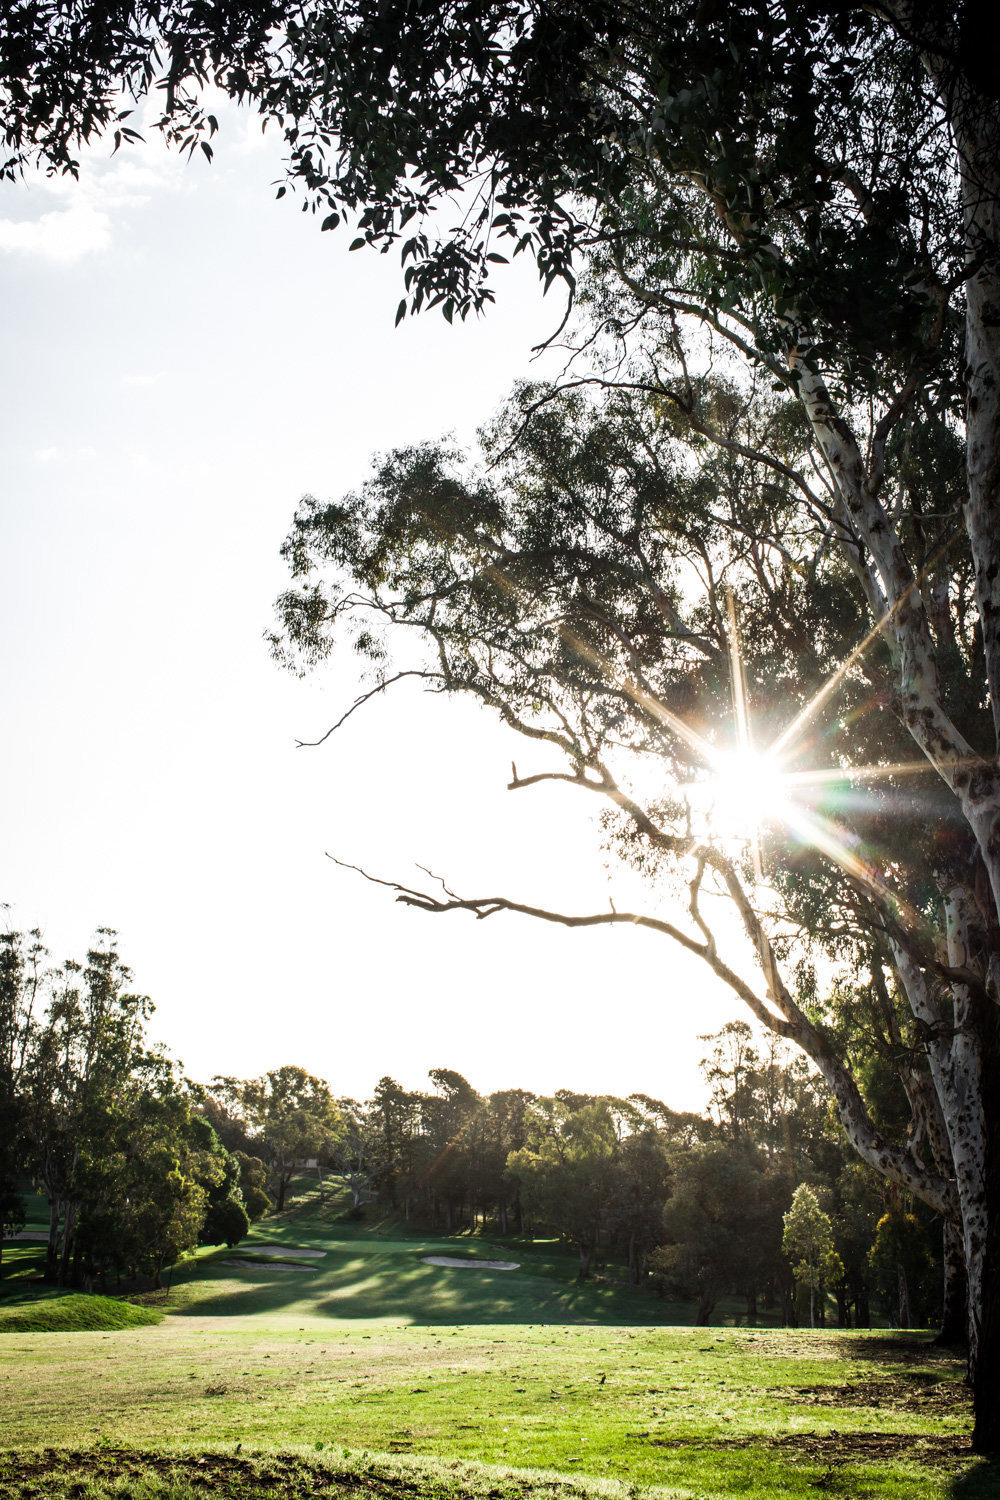 Capital Golf Course - DOMA The Parks Red Hill - Anisa Sabet - Photographer-175